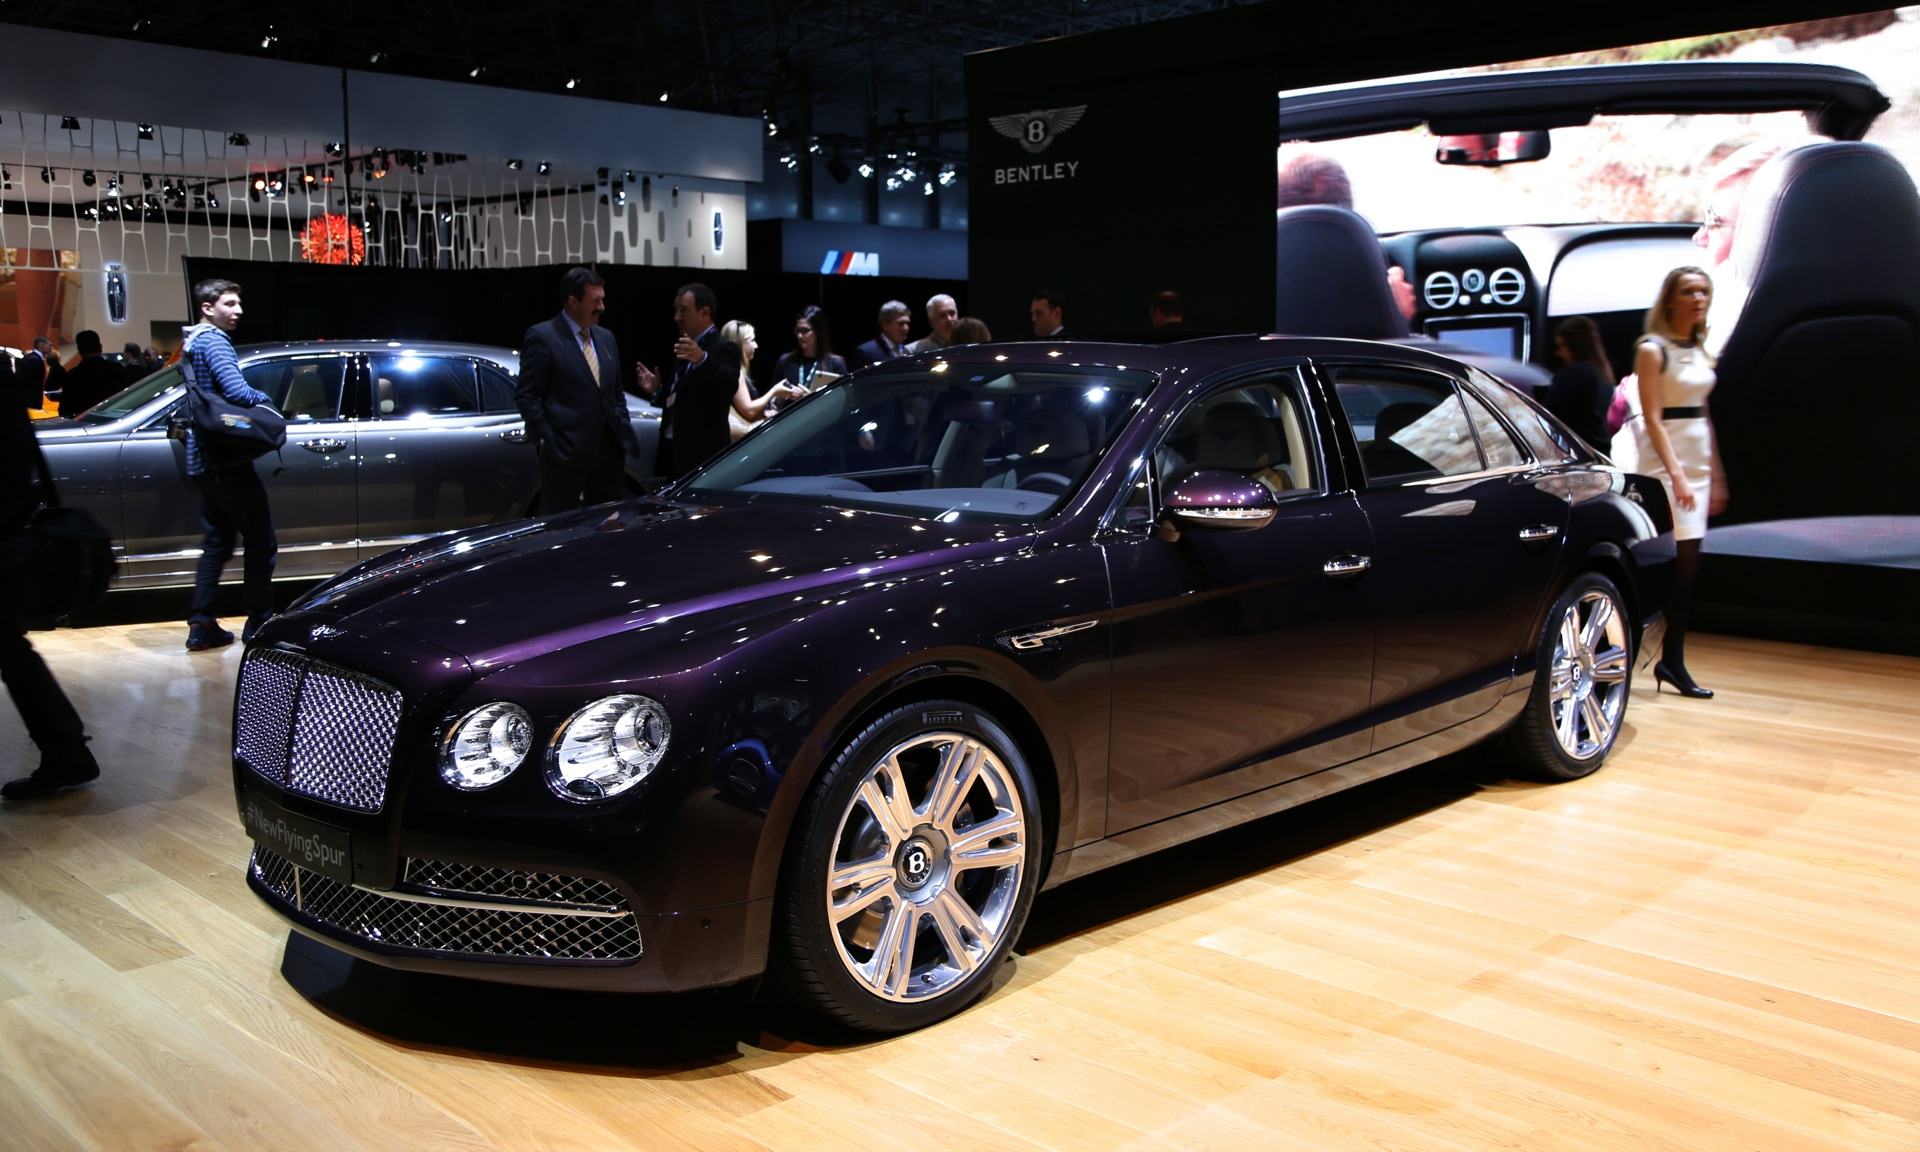 2014 bentley flying spur live photos from the new york auto show. Black Bedroom Furniture Sets. Home Design Ideas